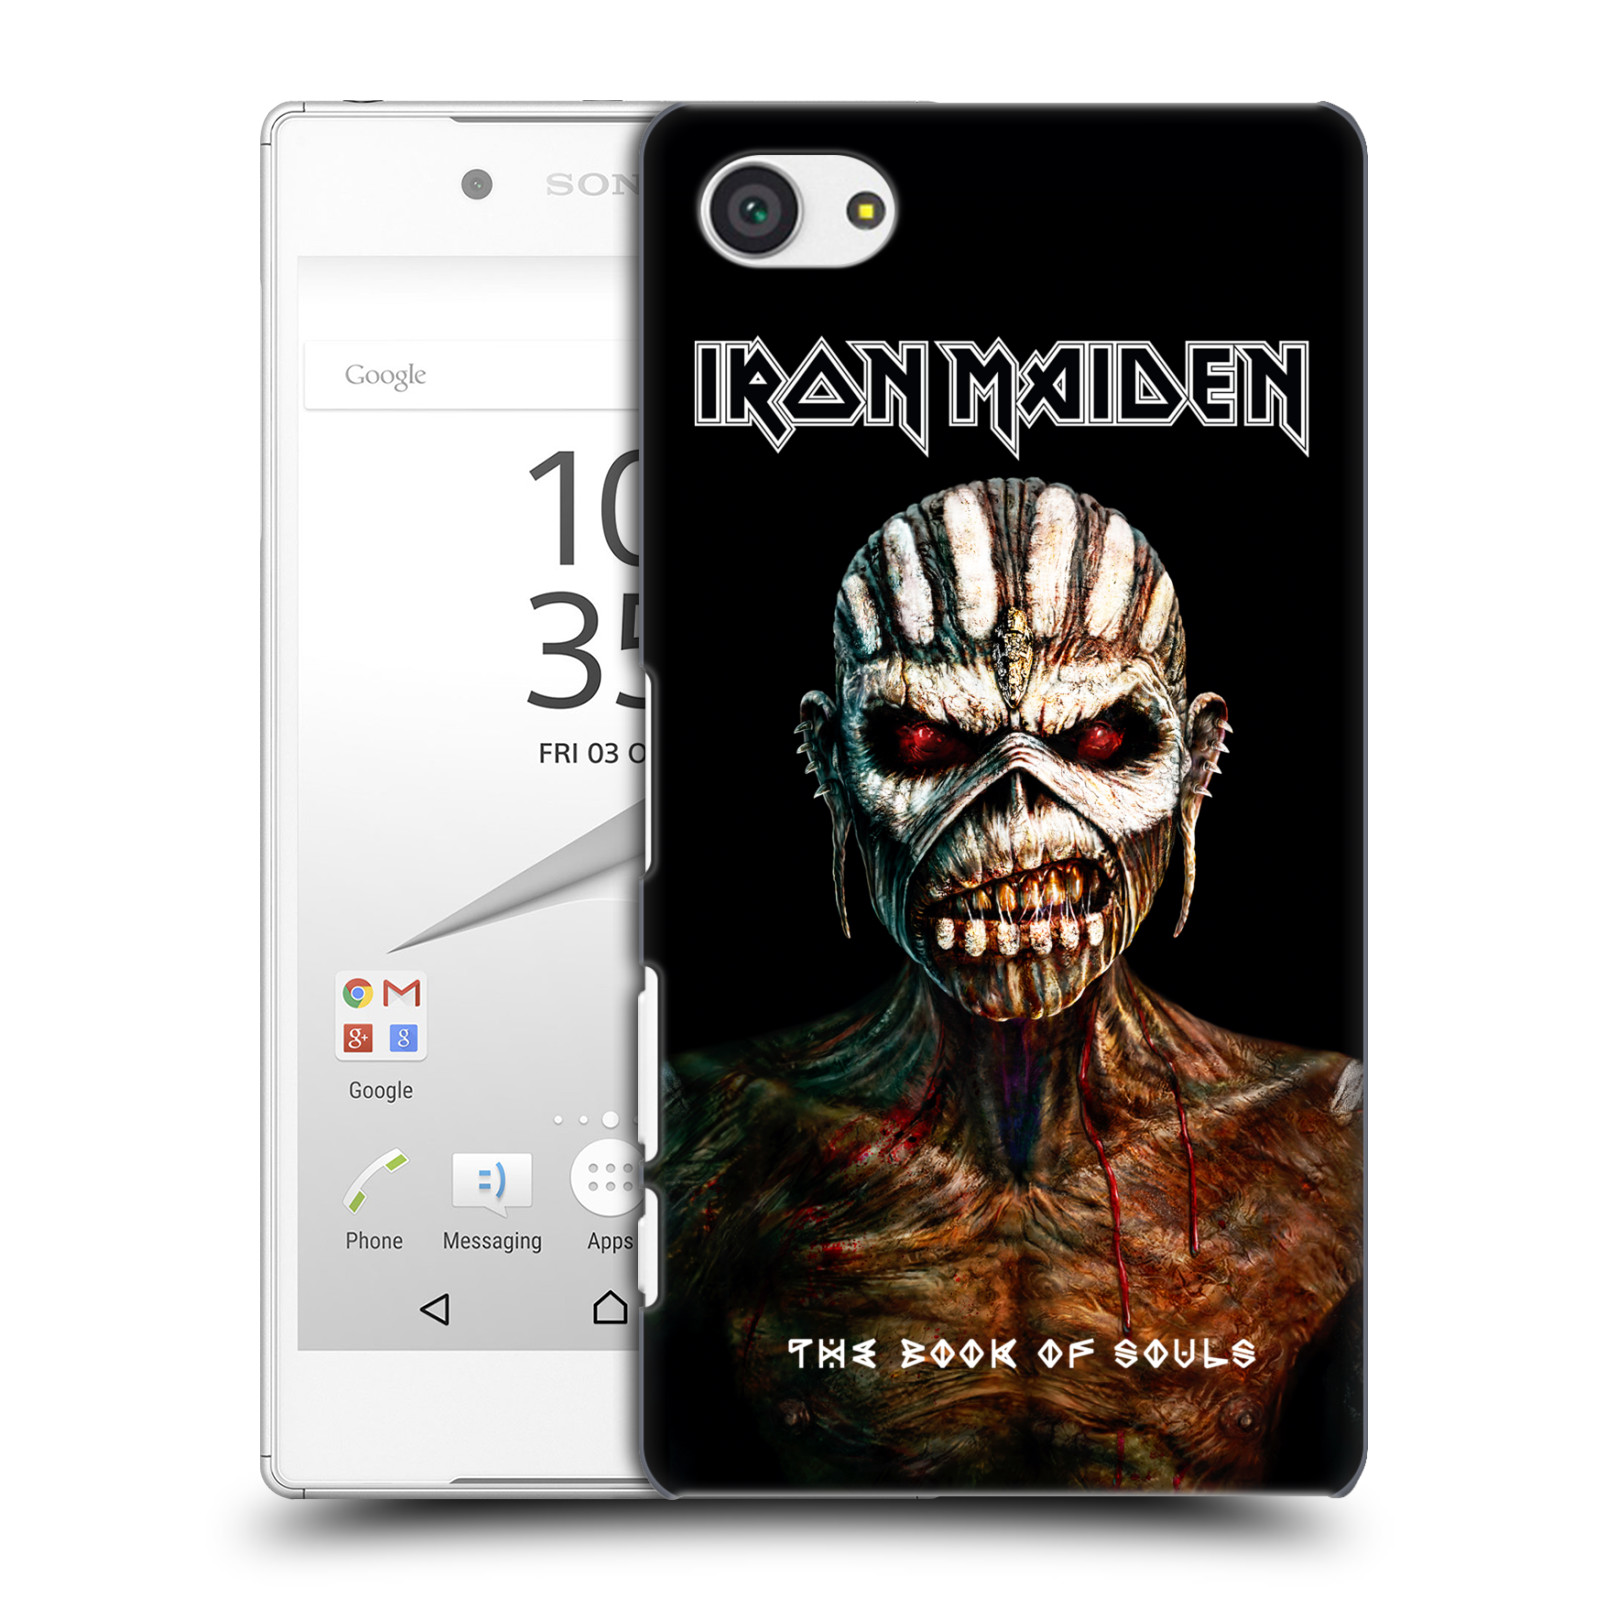 Plastové pouzdro na mobil Sony Xperia Z5 Compact HEAD CASE - Iron Maiden - The Book Of Souls